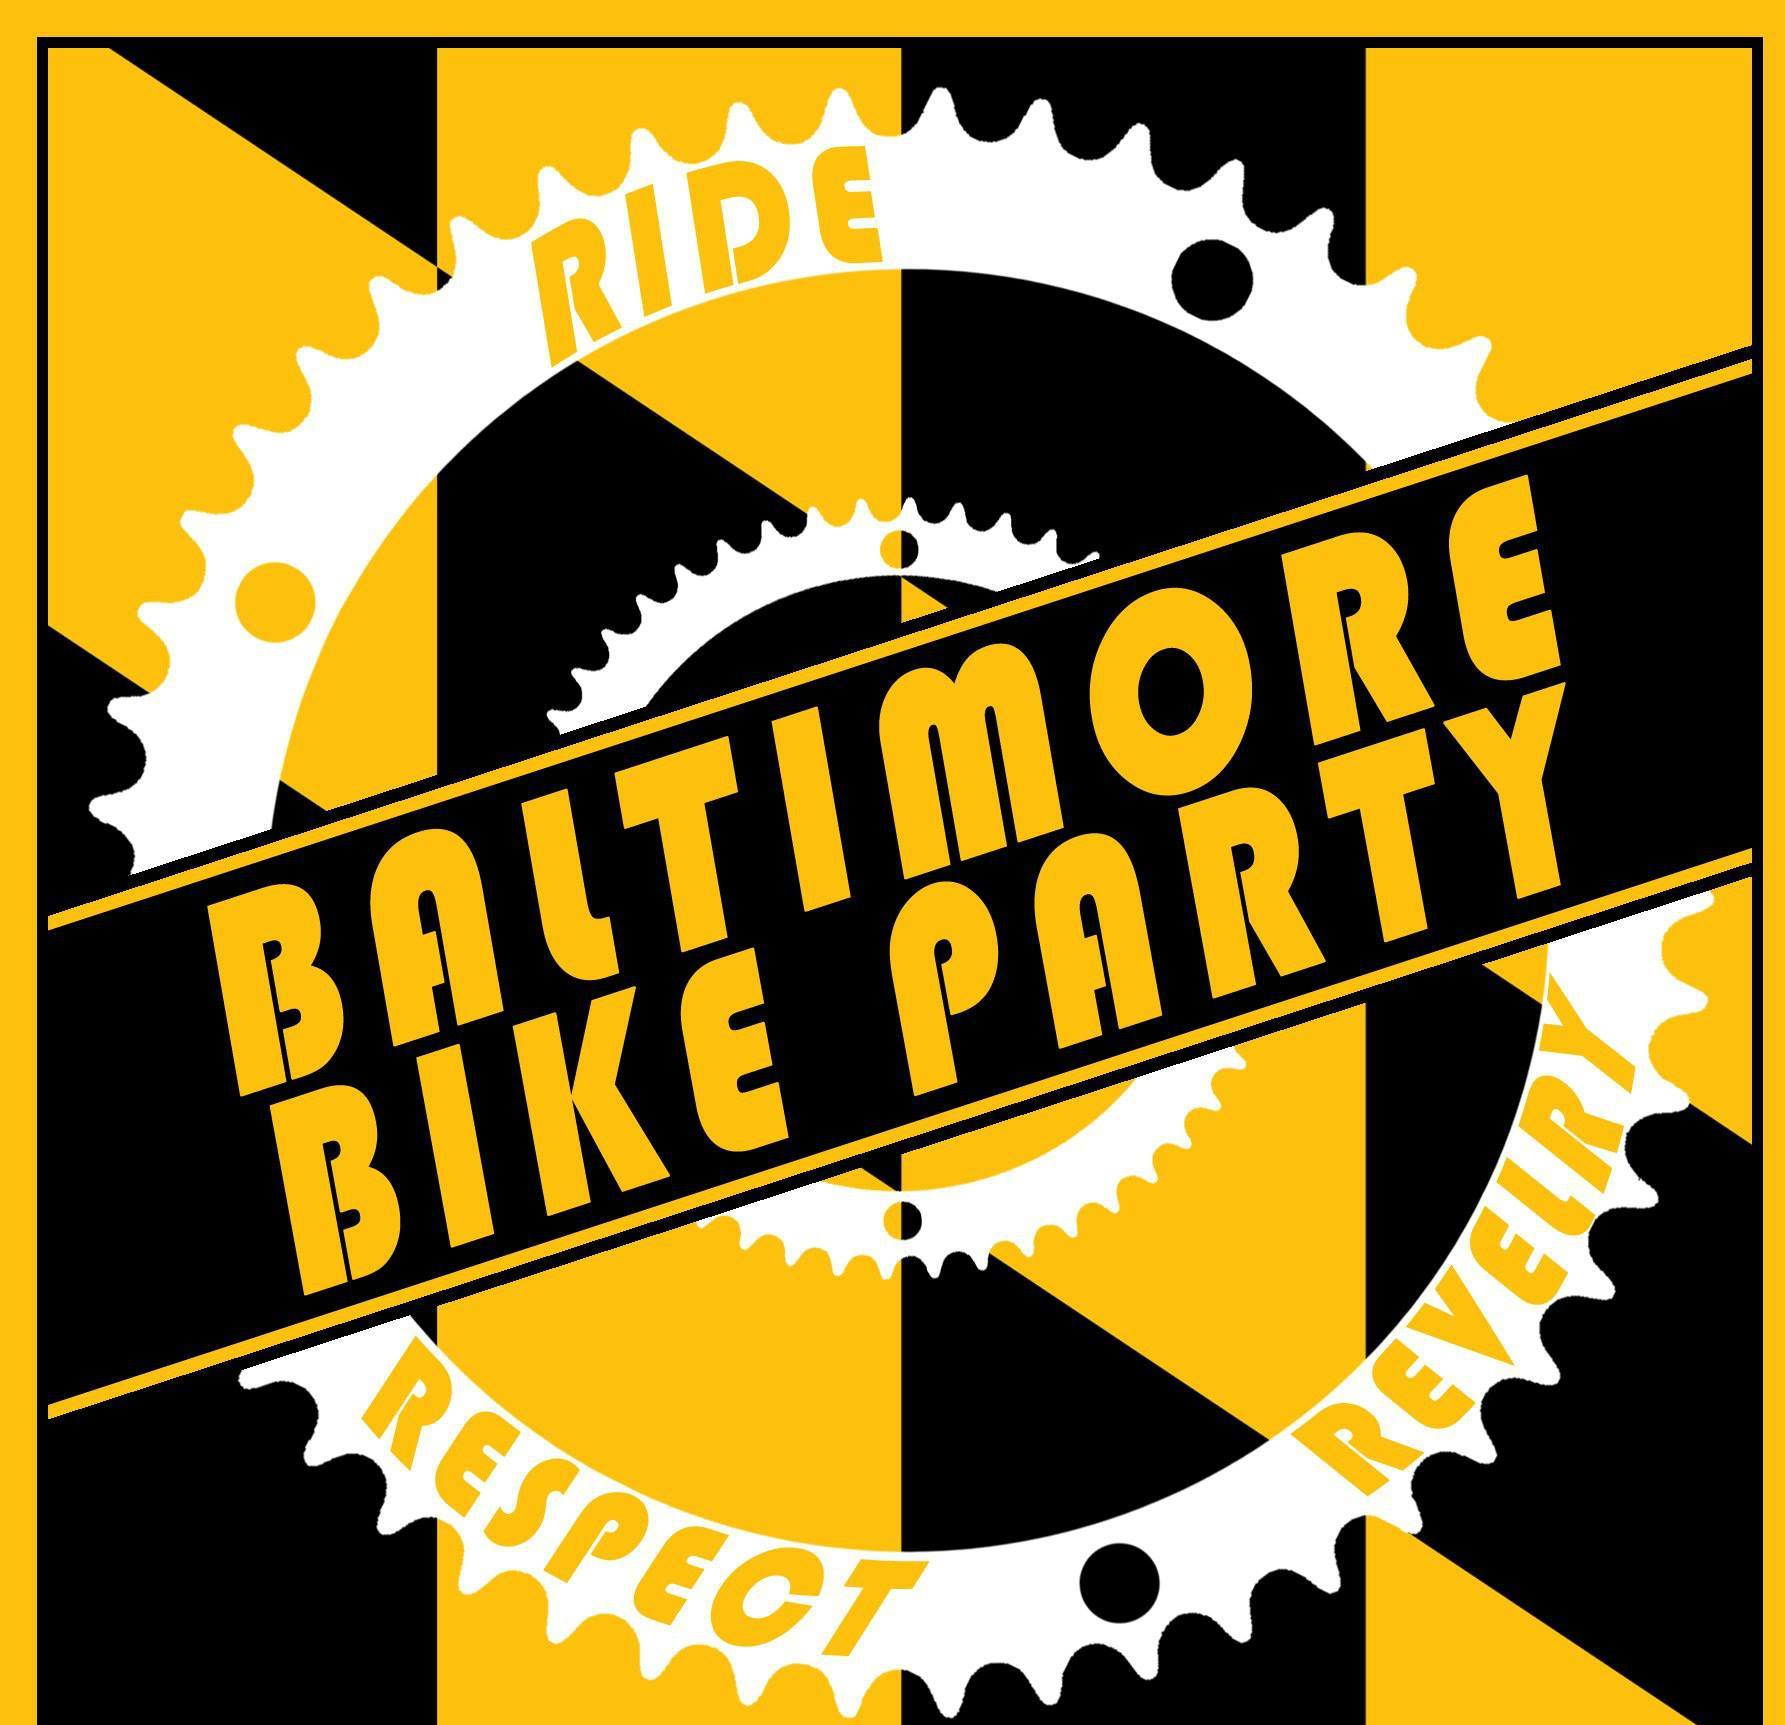 bike party logo.jpg